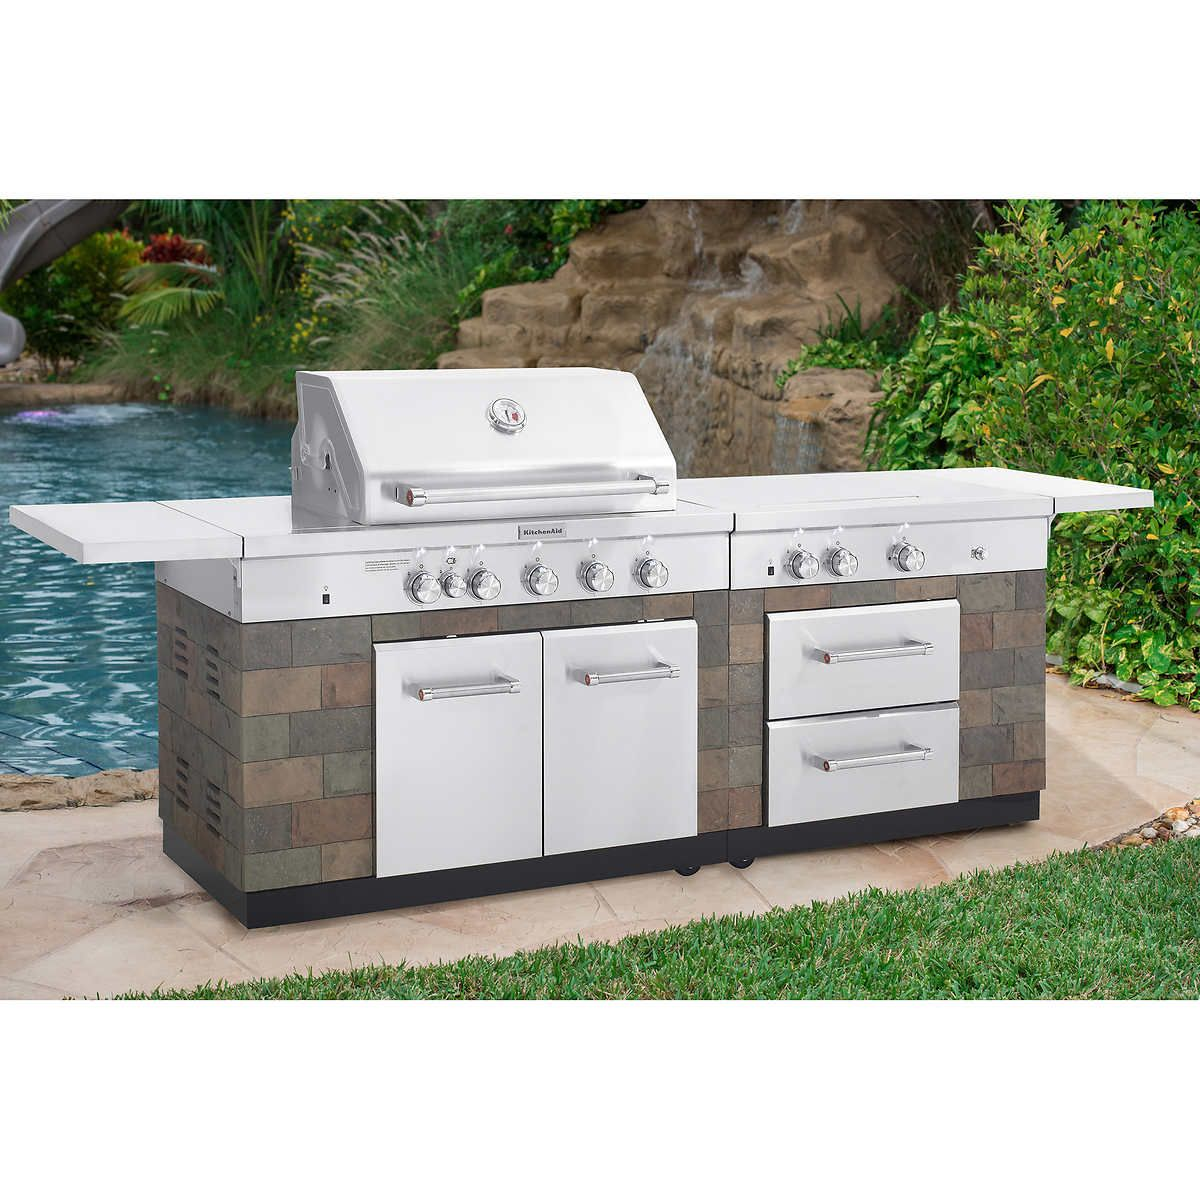 Kitchenaid 9 Burner Island Grill Outdoor Kitchen Bbq Built In